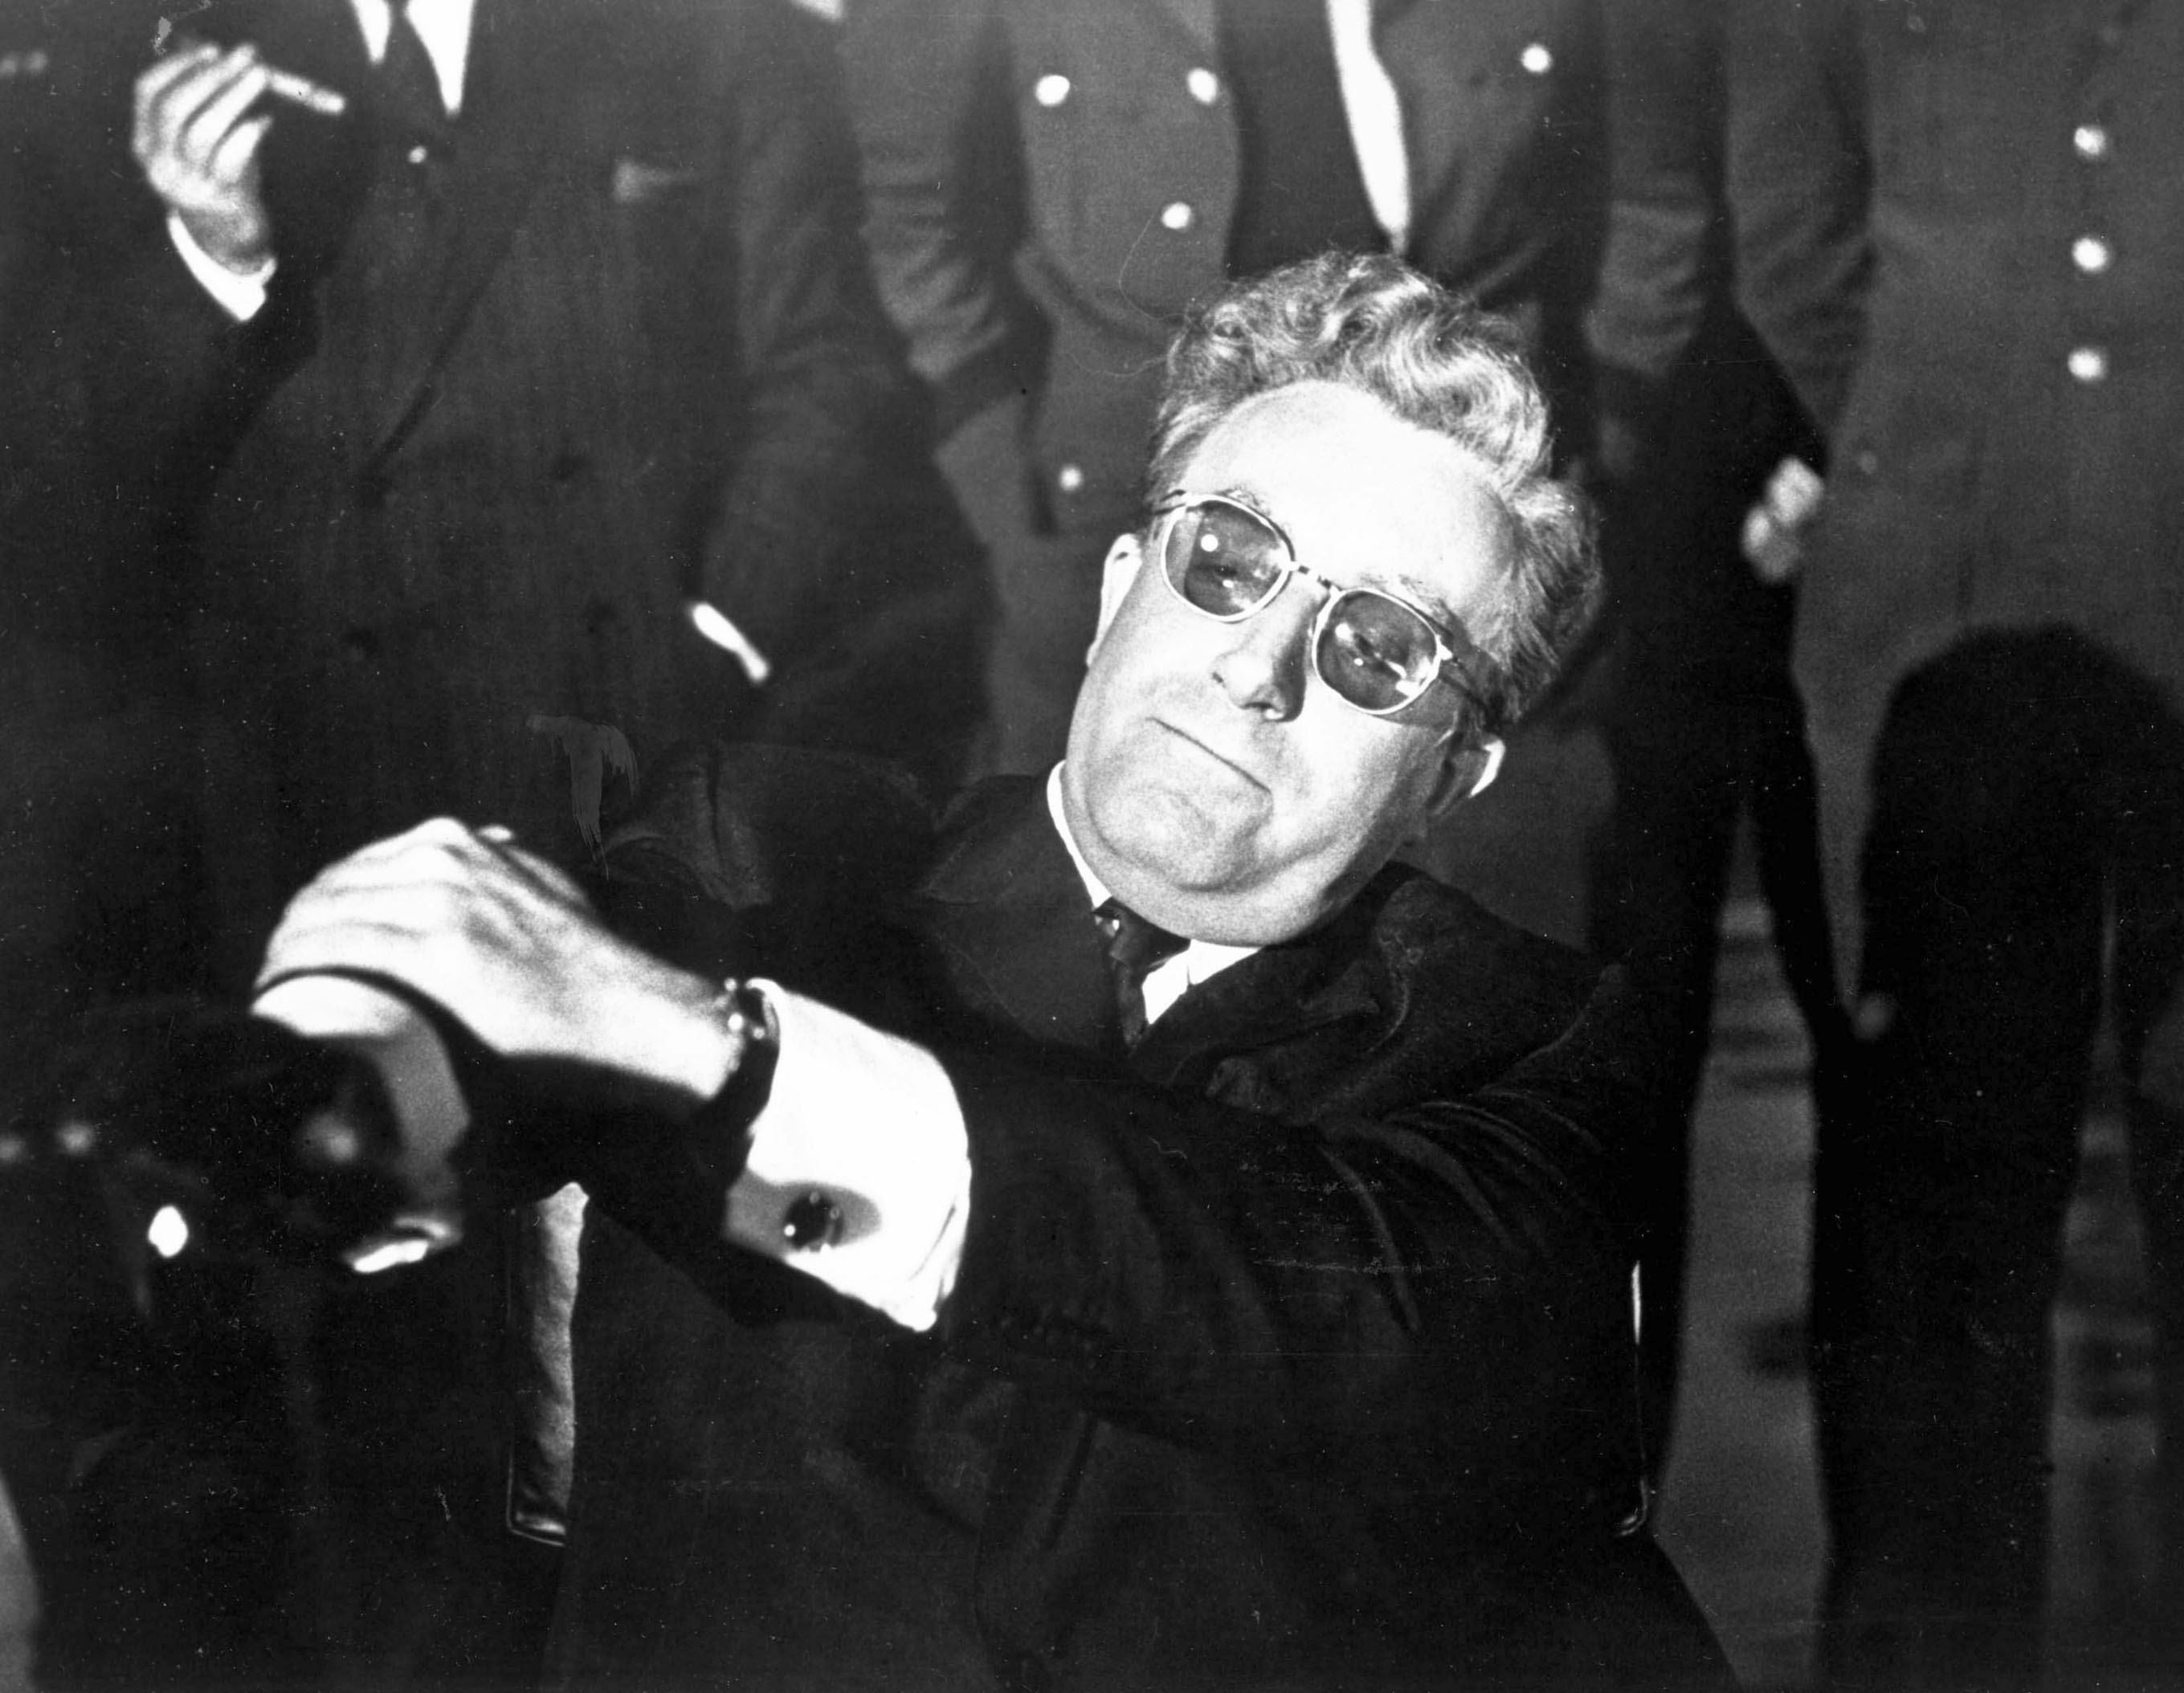 DR. STRANGELOVE OR: HOW I LEARNED TO STOP WORRYING AND LOVE THE BOMB [BR 1964] aka DR. STRANGELOVE PETER SELLERS as Dr Strang